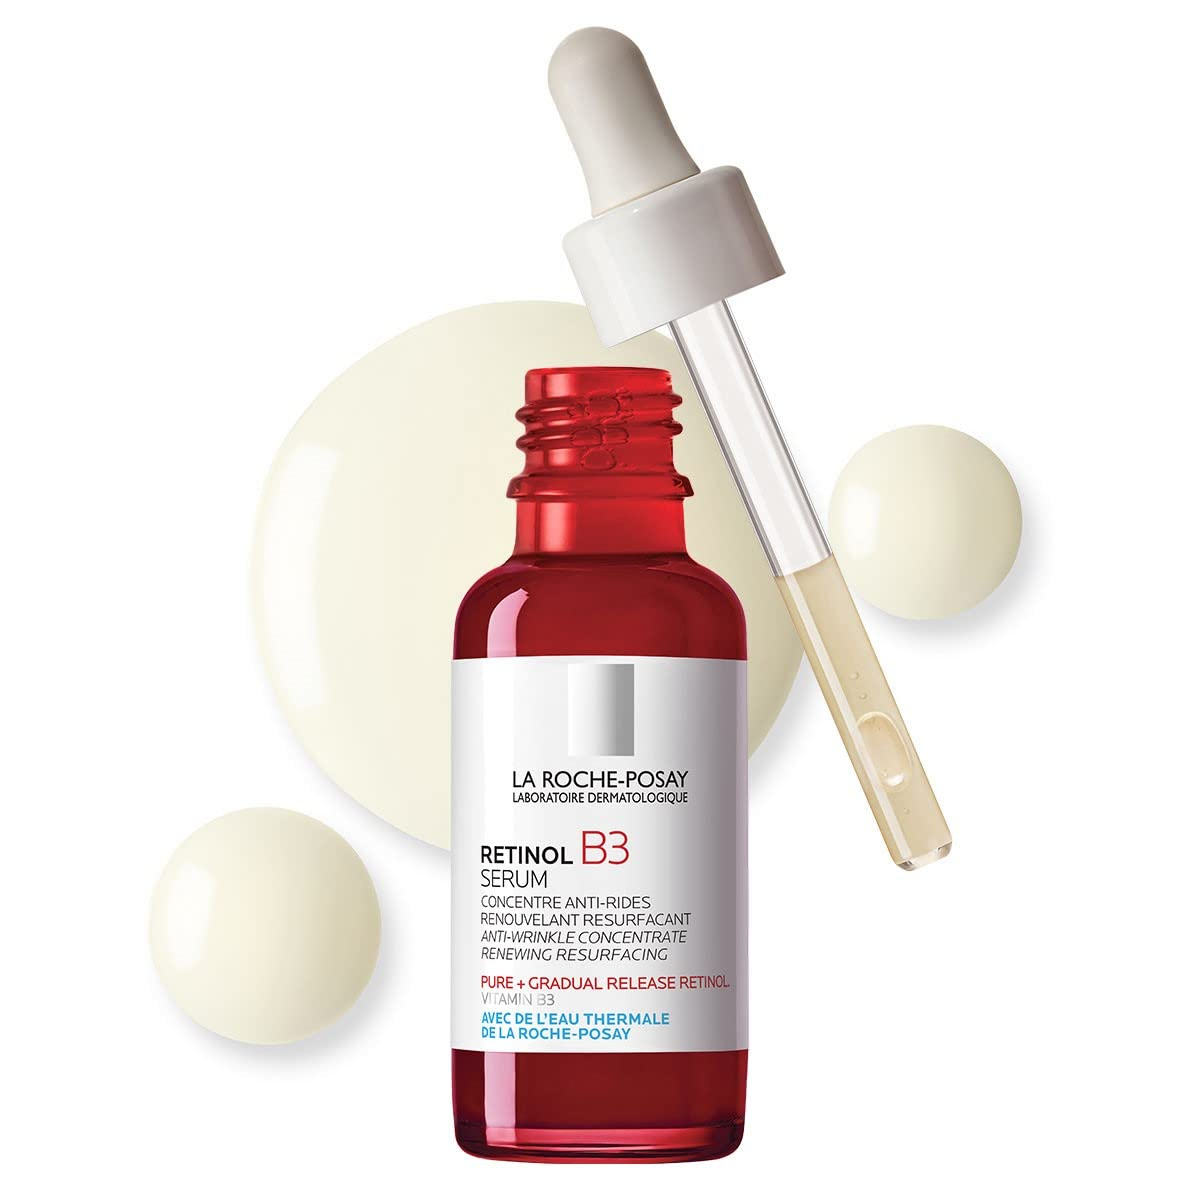 Nelson Honey Royal Nectar Original Face Mask 50ml